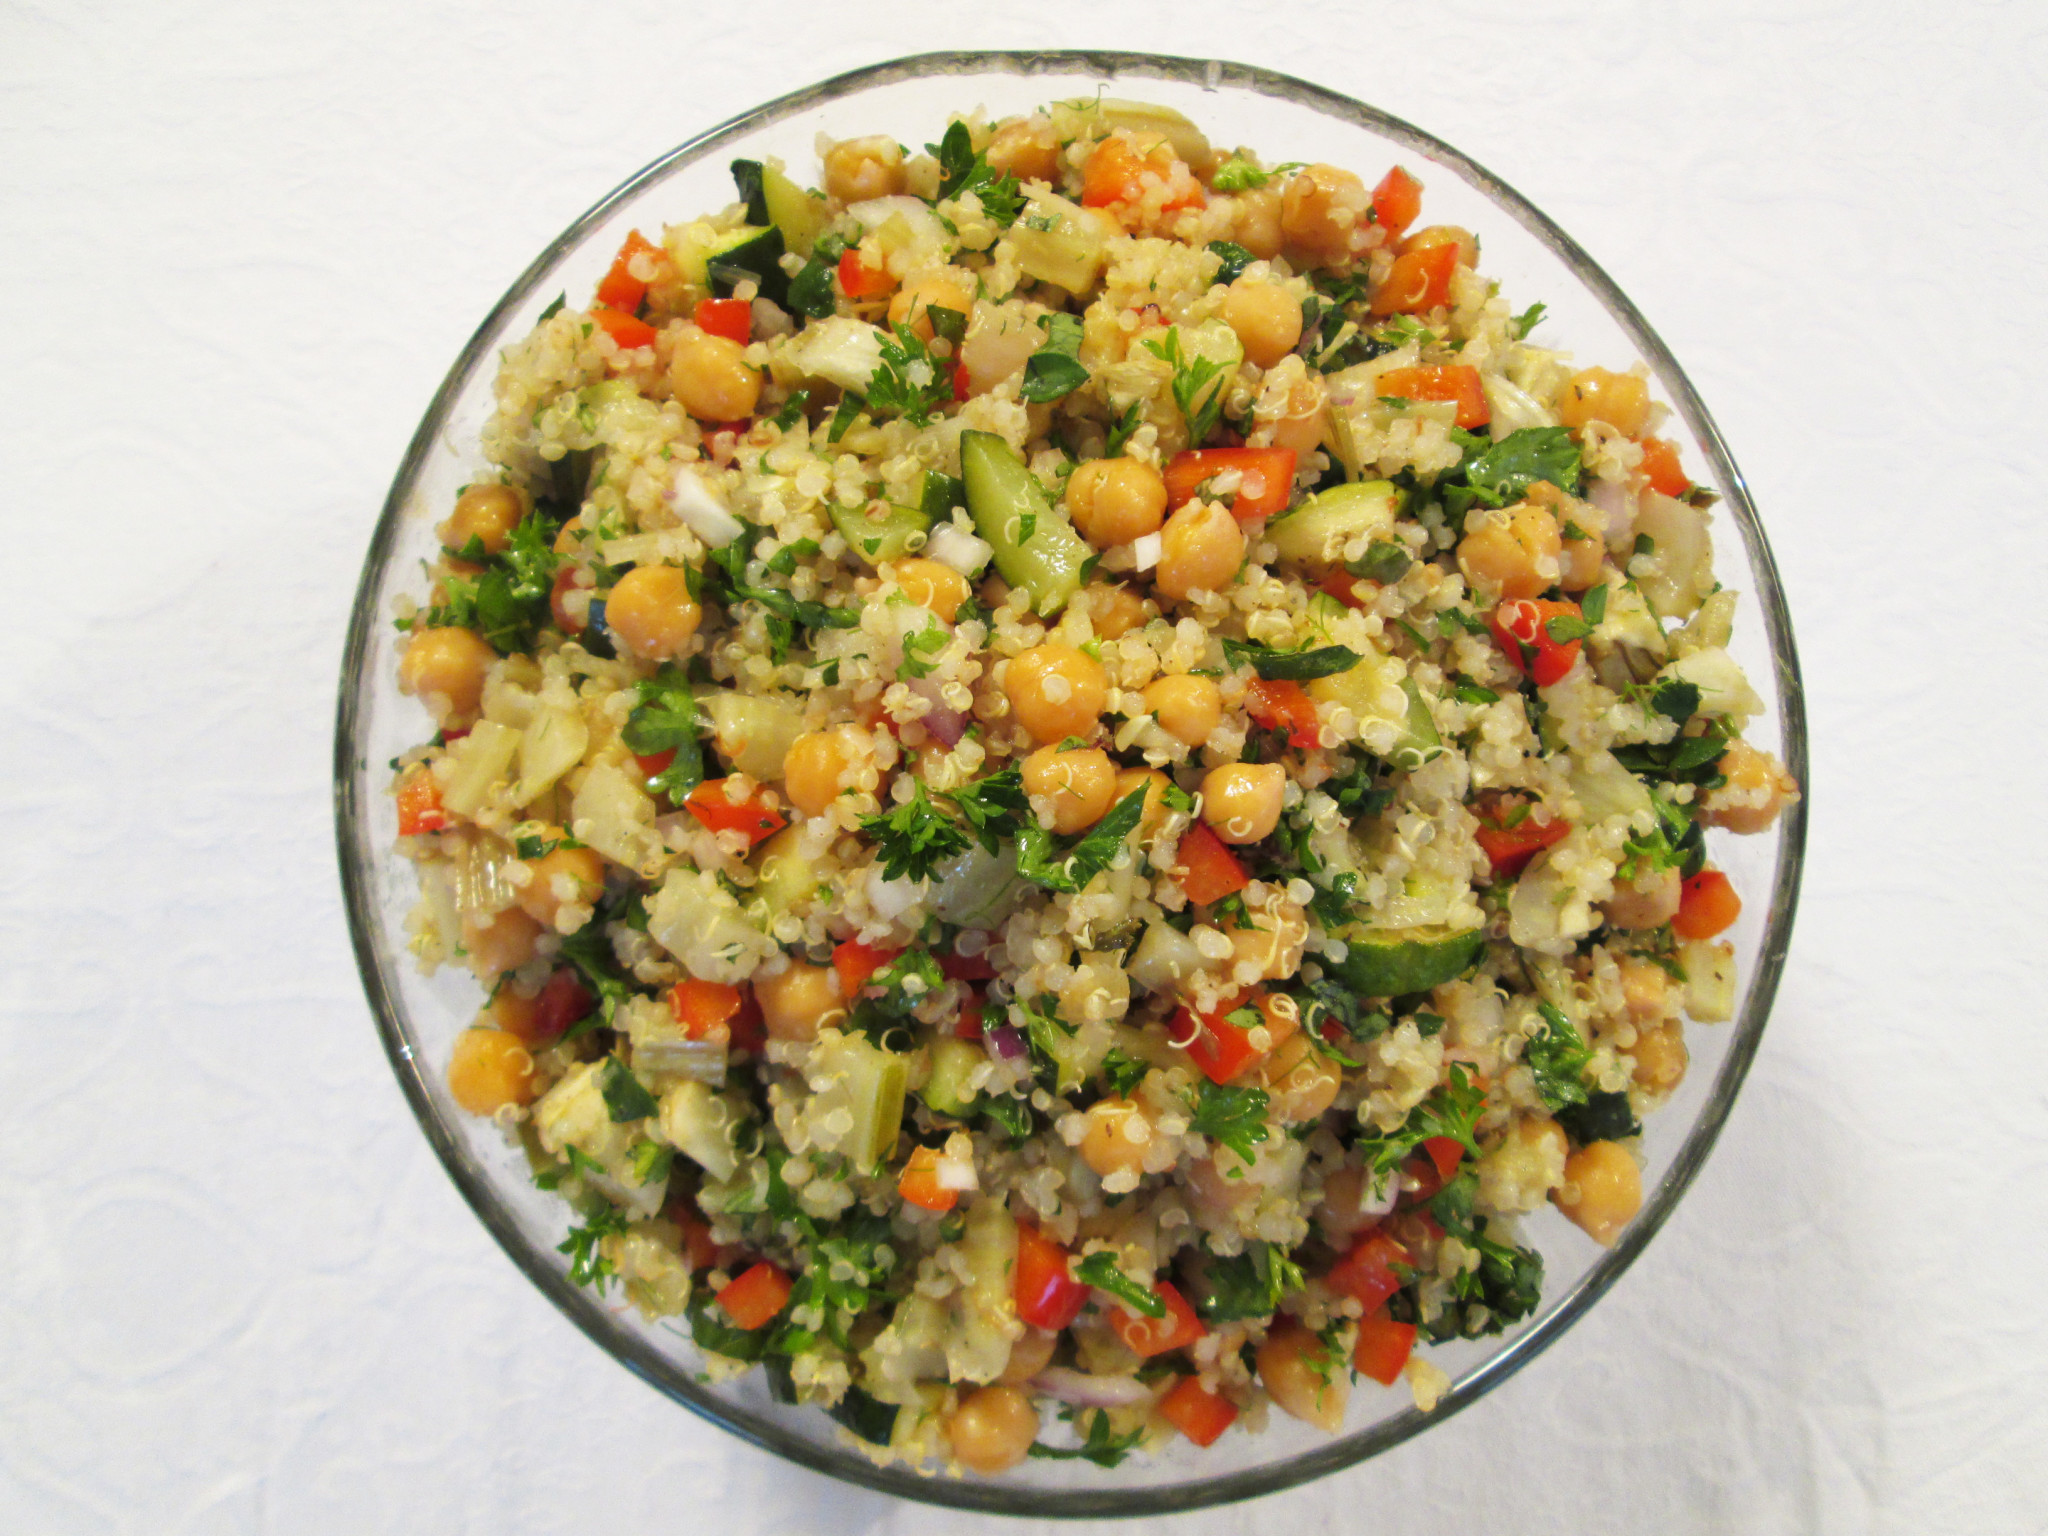 Chickpea Quinoa Salad with Roasted Vegetables Recipe - Robins ...